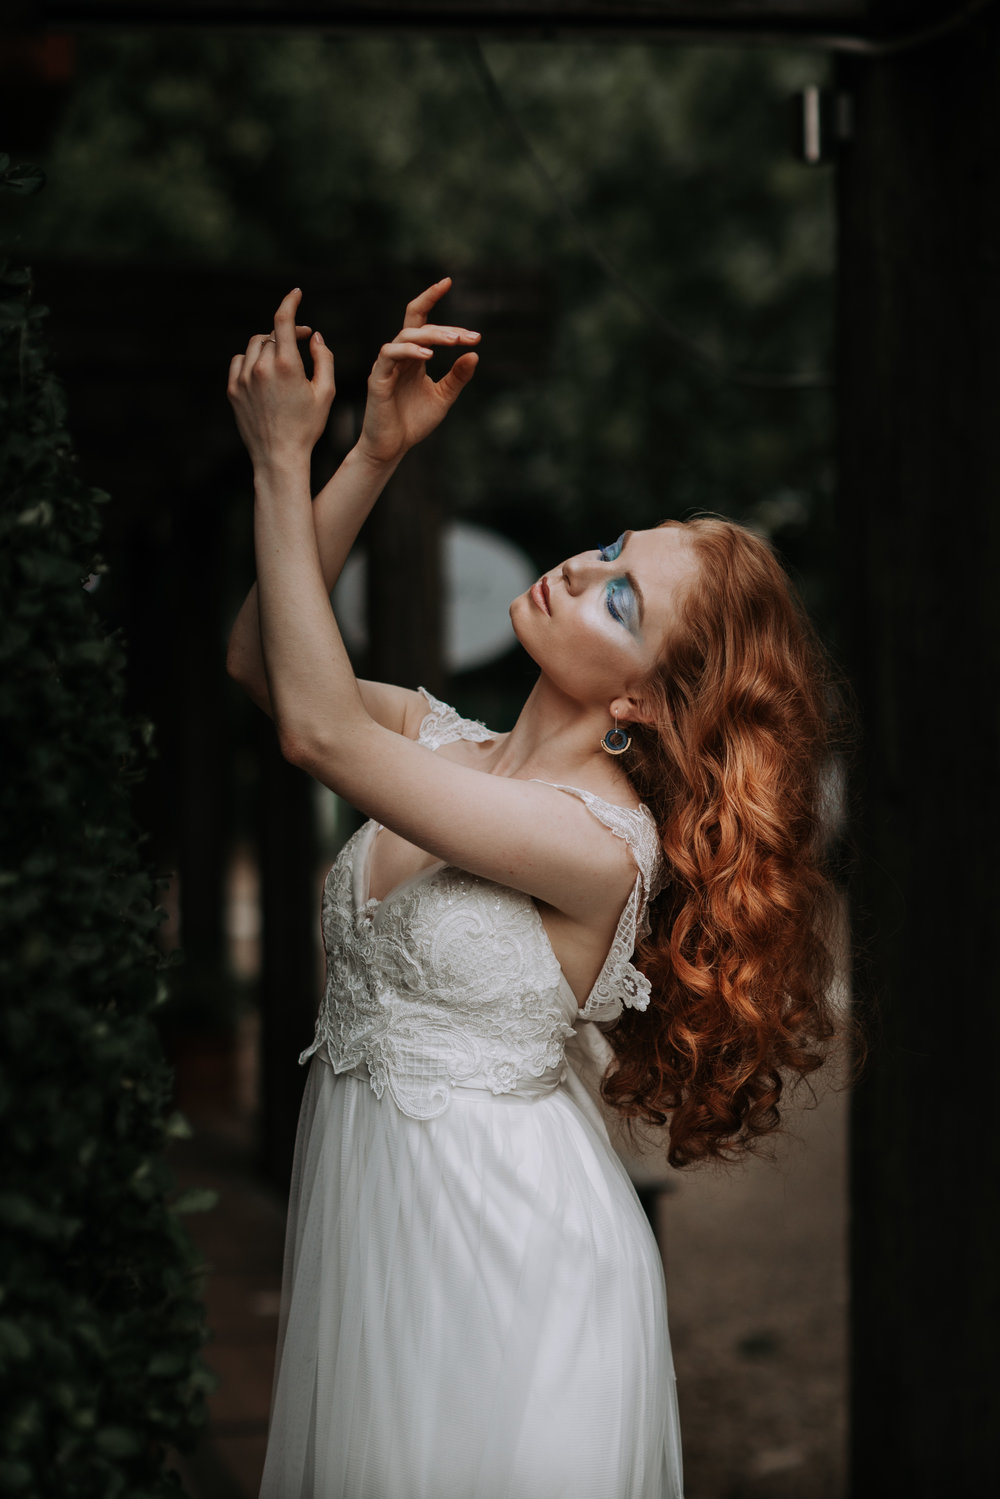 LOVELENSCAPES PHOTOGRAPHY X ANNA CAMPBELL BRIDAL X LEMAE MAKEUP ARTISTRY X BLOOMING LOVELY BOUQUETS X ERIN LIGHTFOOT X LITTLE WHITE COUTURE • 9.jpg